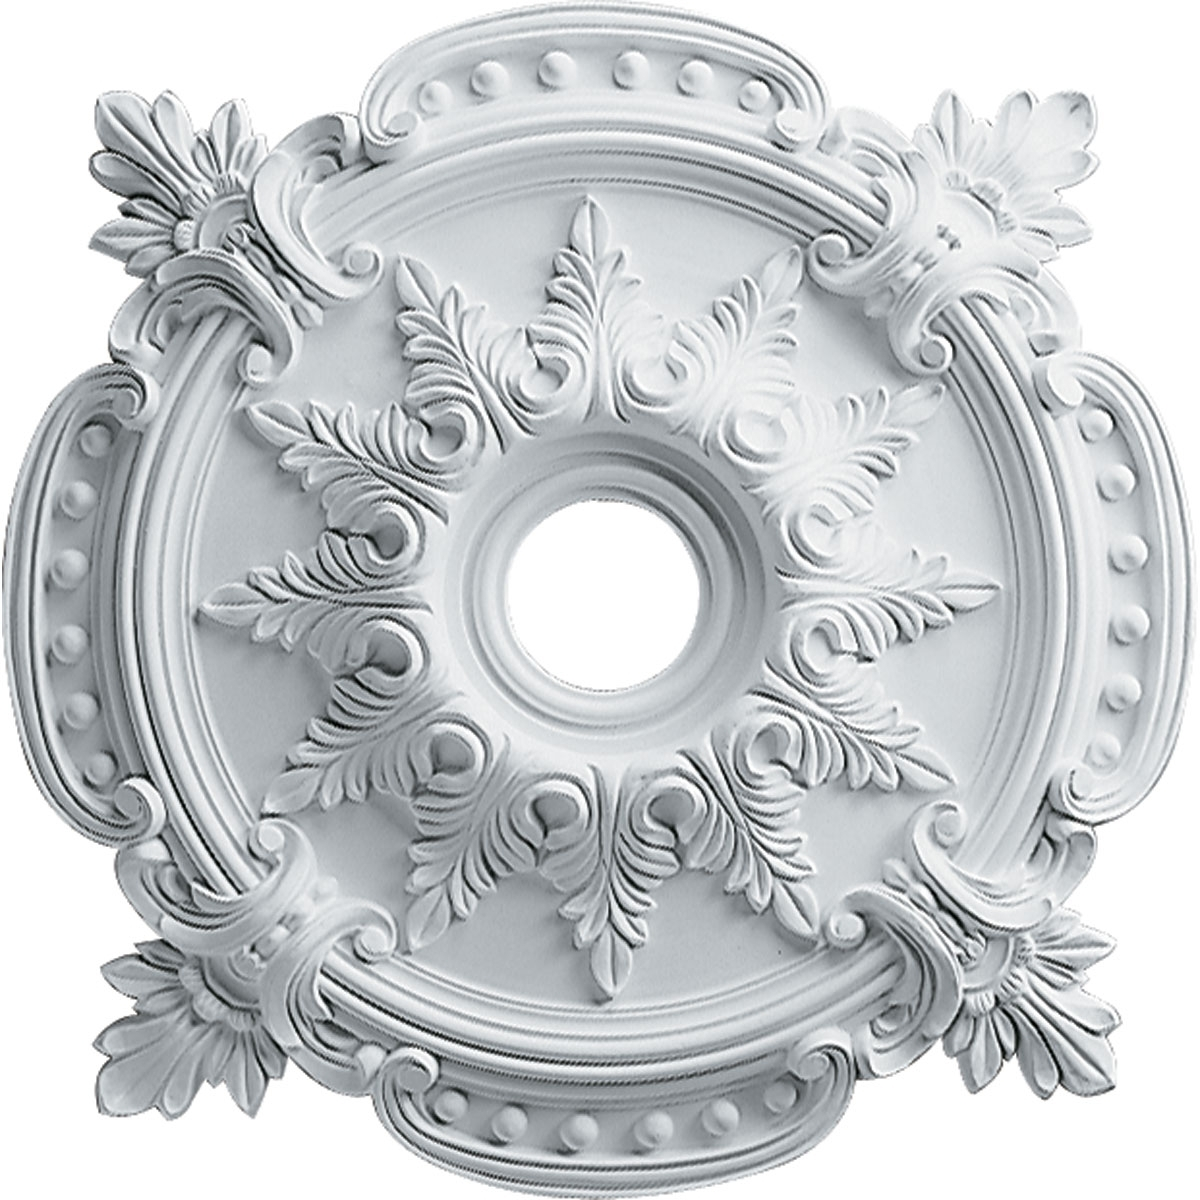 Ceiling Medallion Wall Art Throughout Most Recent Ceiling Medallions Wall Art – Ceiling Medallions Buying Guides To (View 6 of 15)